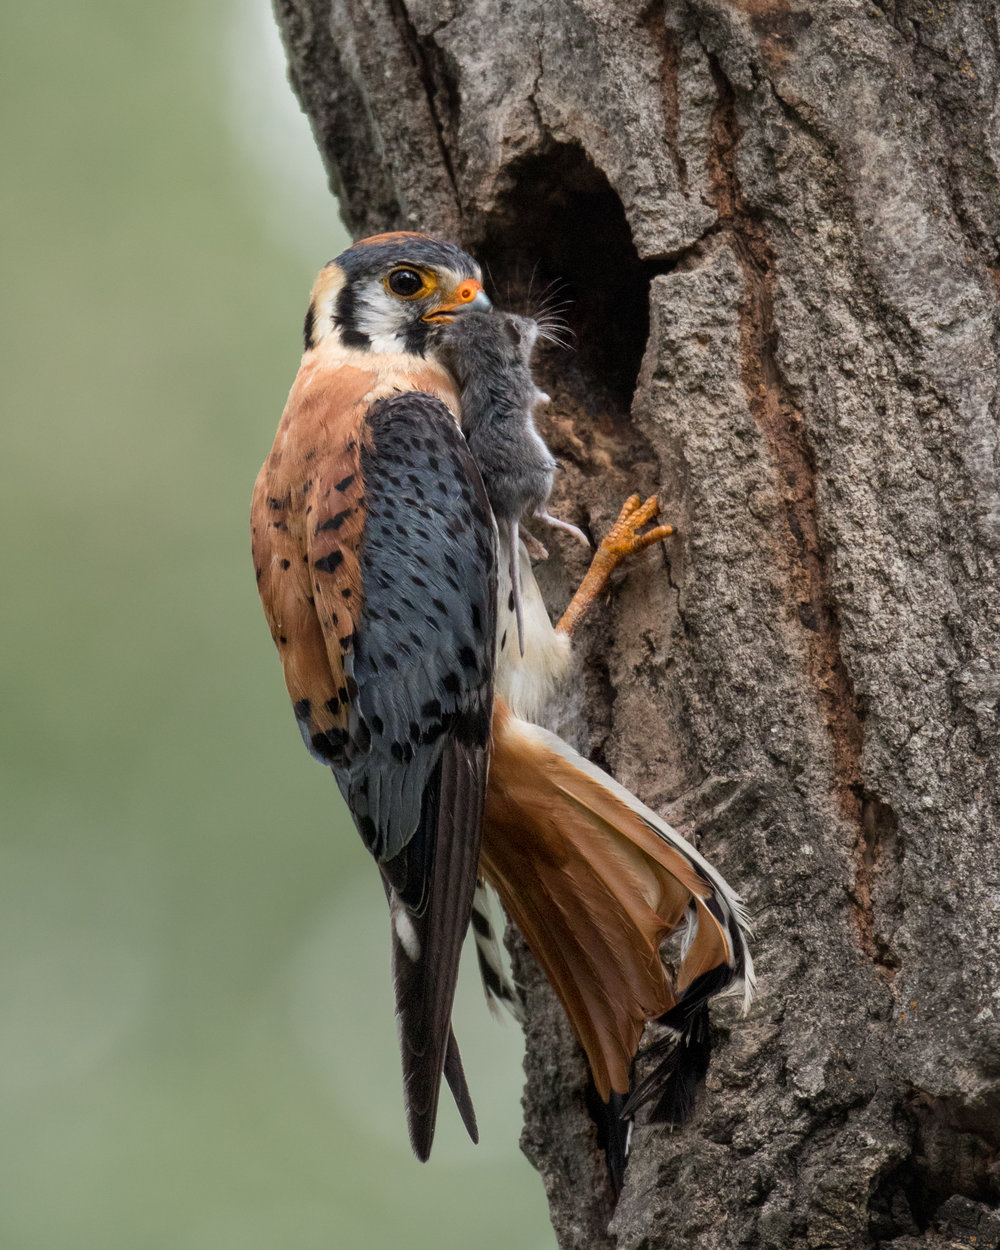 Without recognizing the soft calls of this American Kestrel as he communicated with his mate inside, I never would have found this photogenic nest cavity, otherwise hidden from view where I was walking.